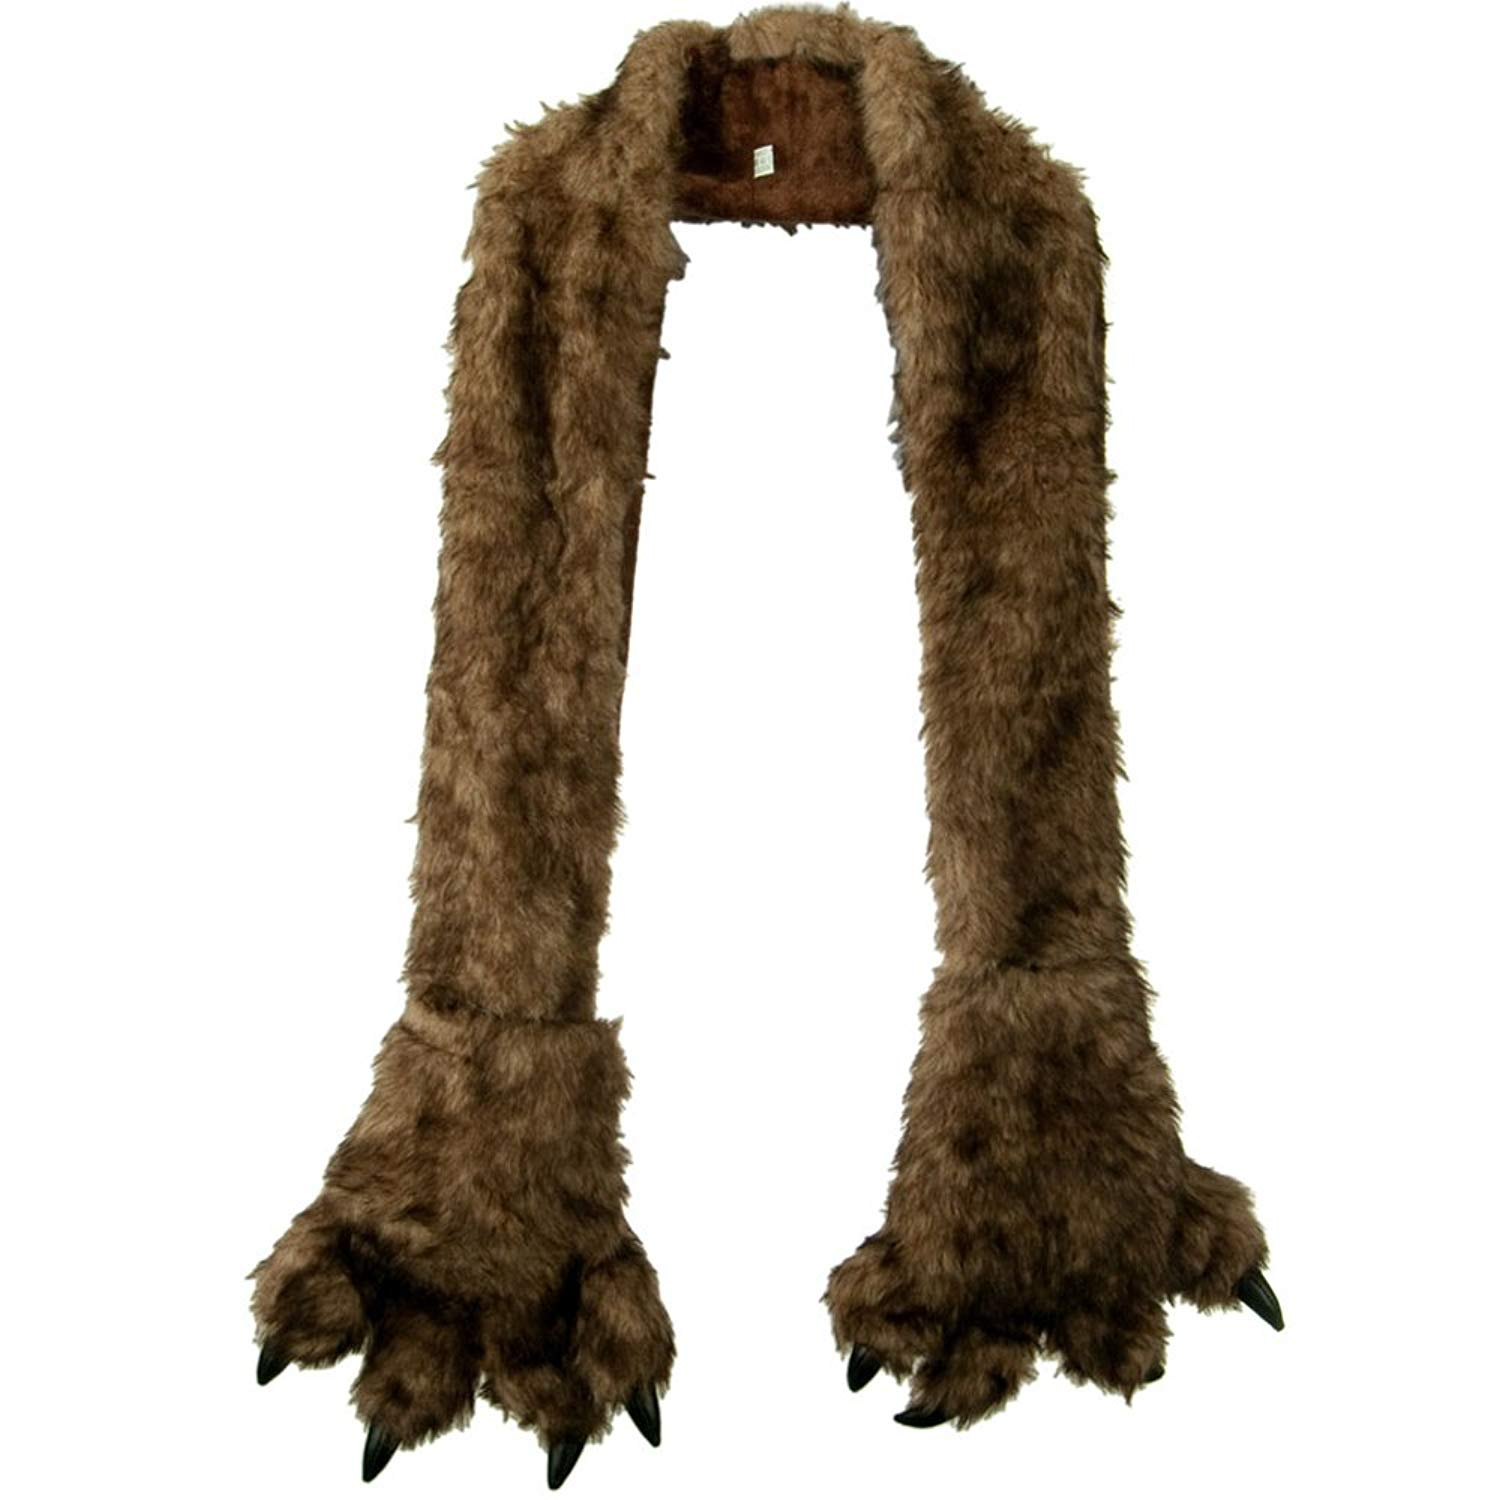 Furry Animal Scarf with Paws - Brown Bear W30S44E